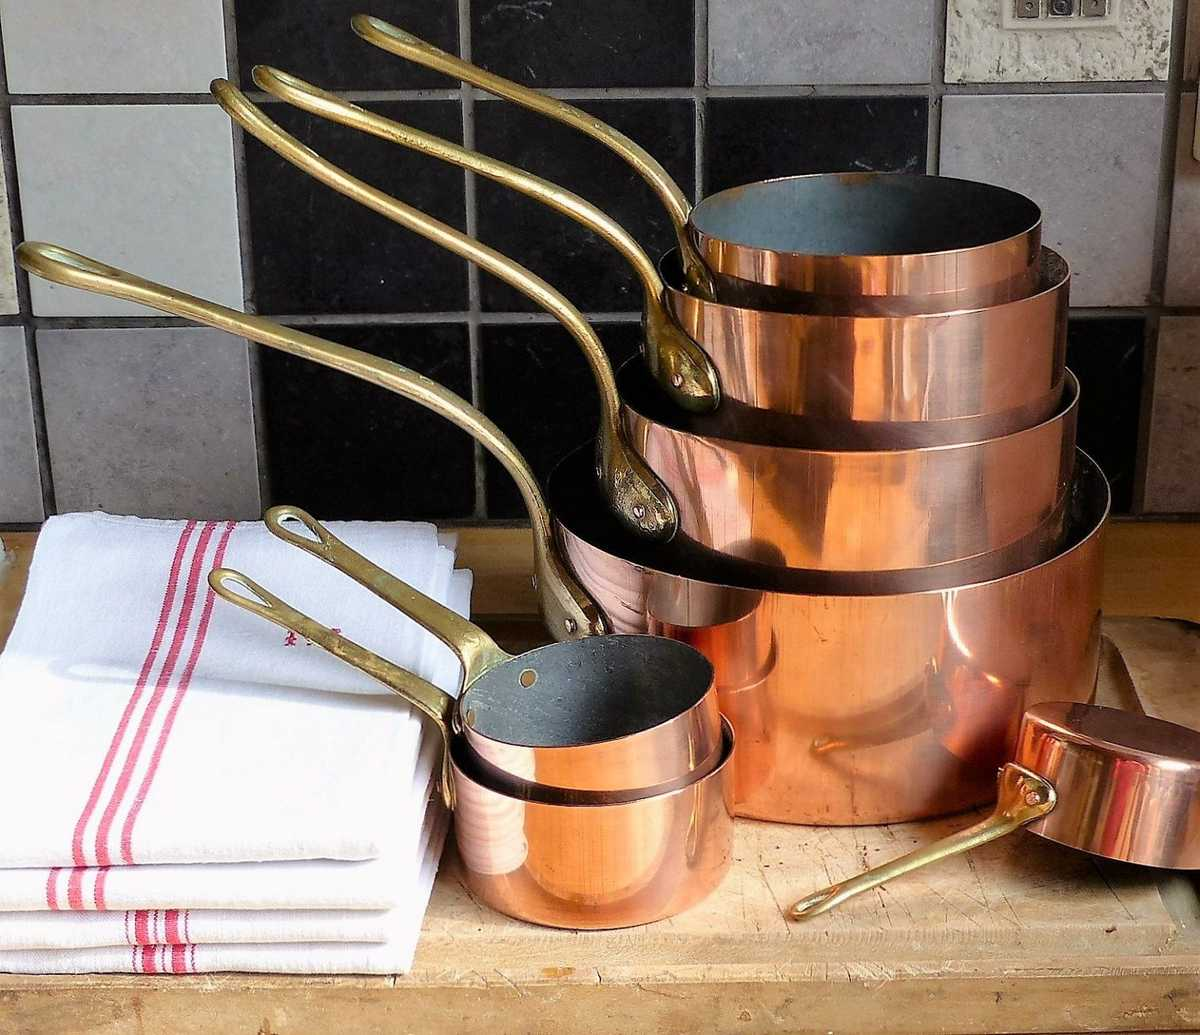 Copper pans look great, but they may have a negative impact on your health